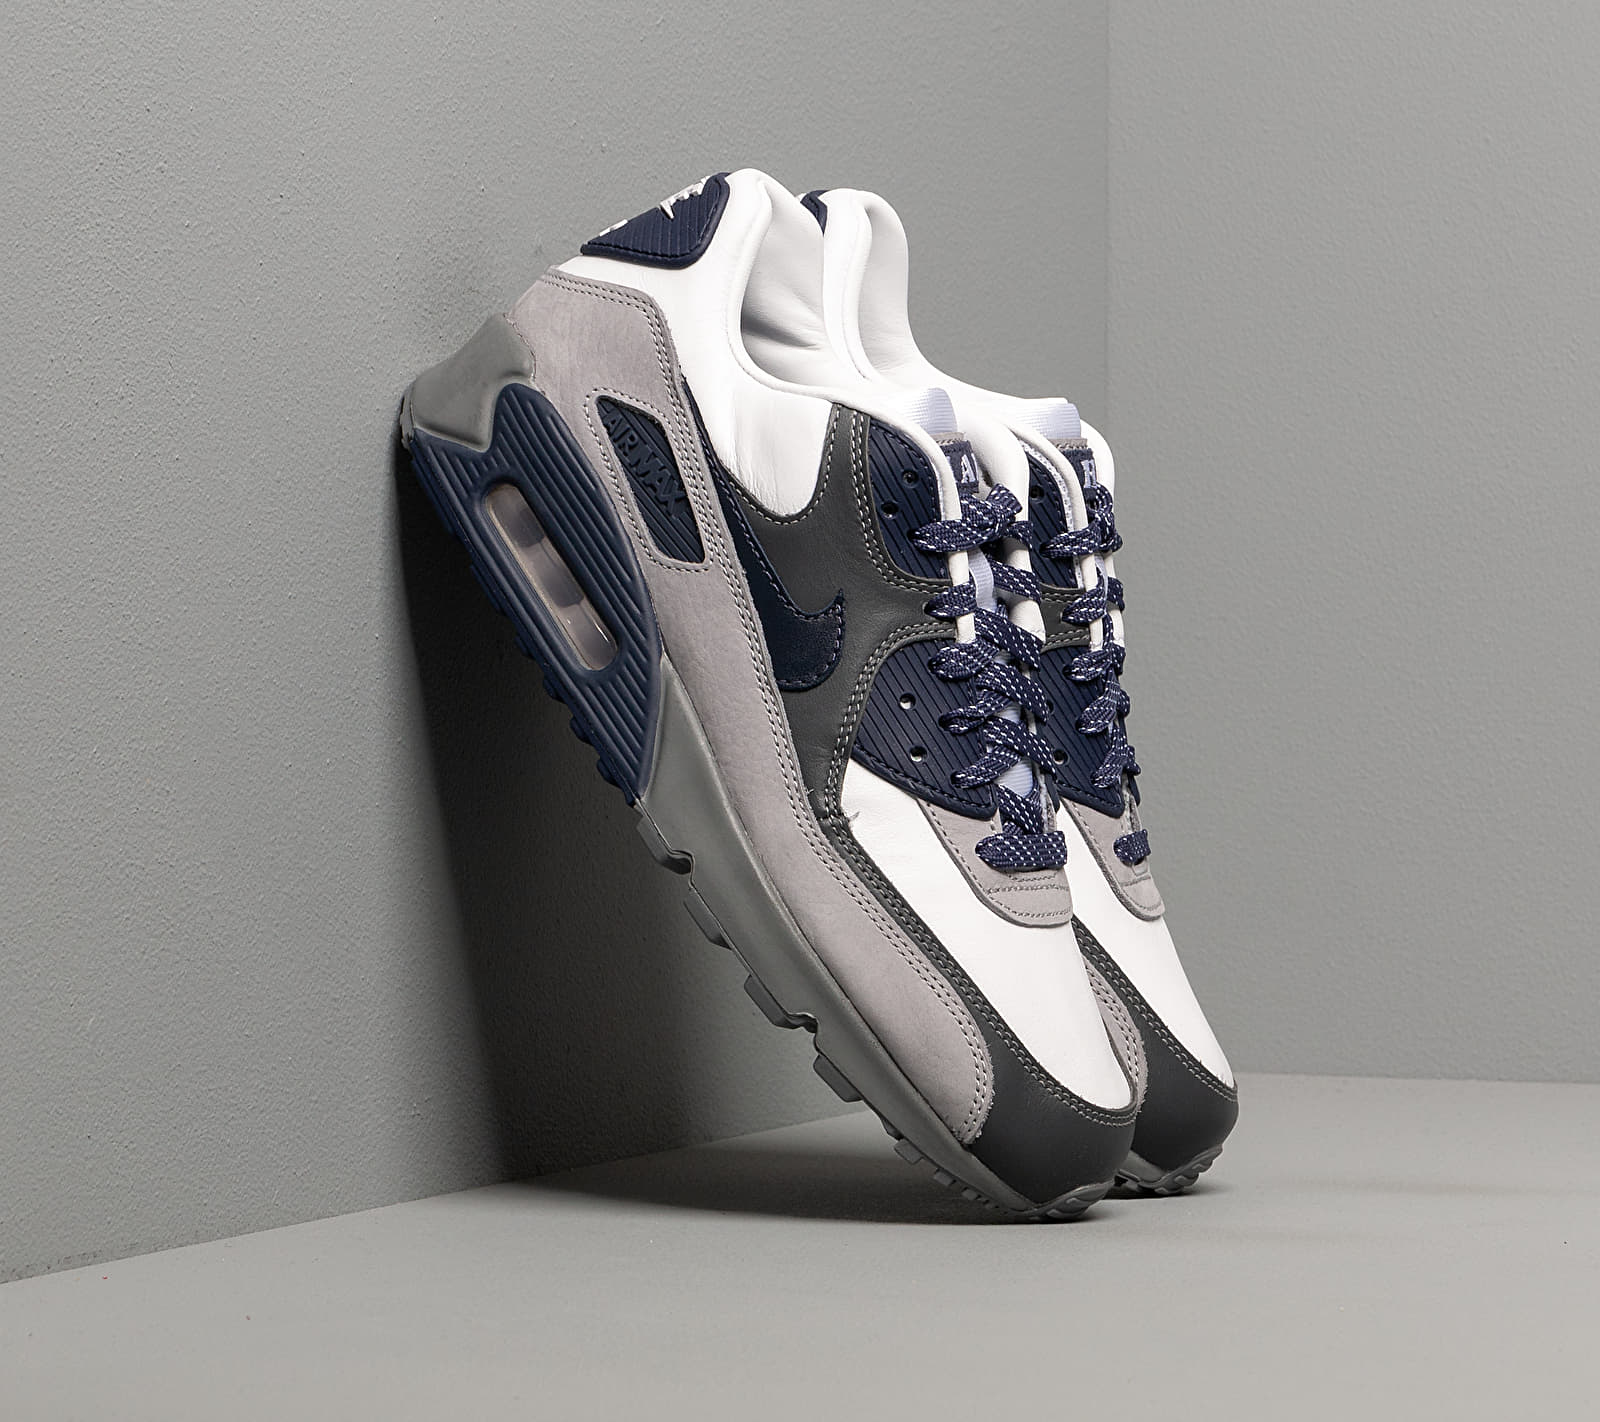 Nike Air Max 90 NRG White/ Neutral Indigo-Smoke Grey CI5646-100